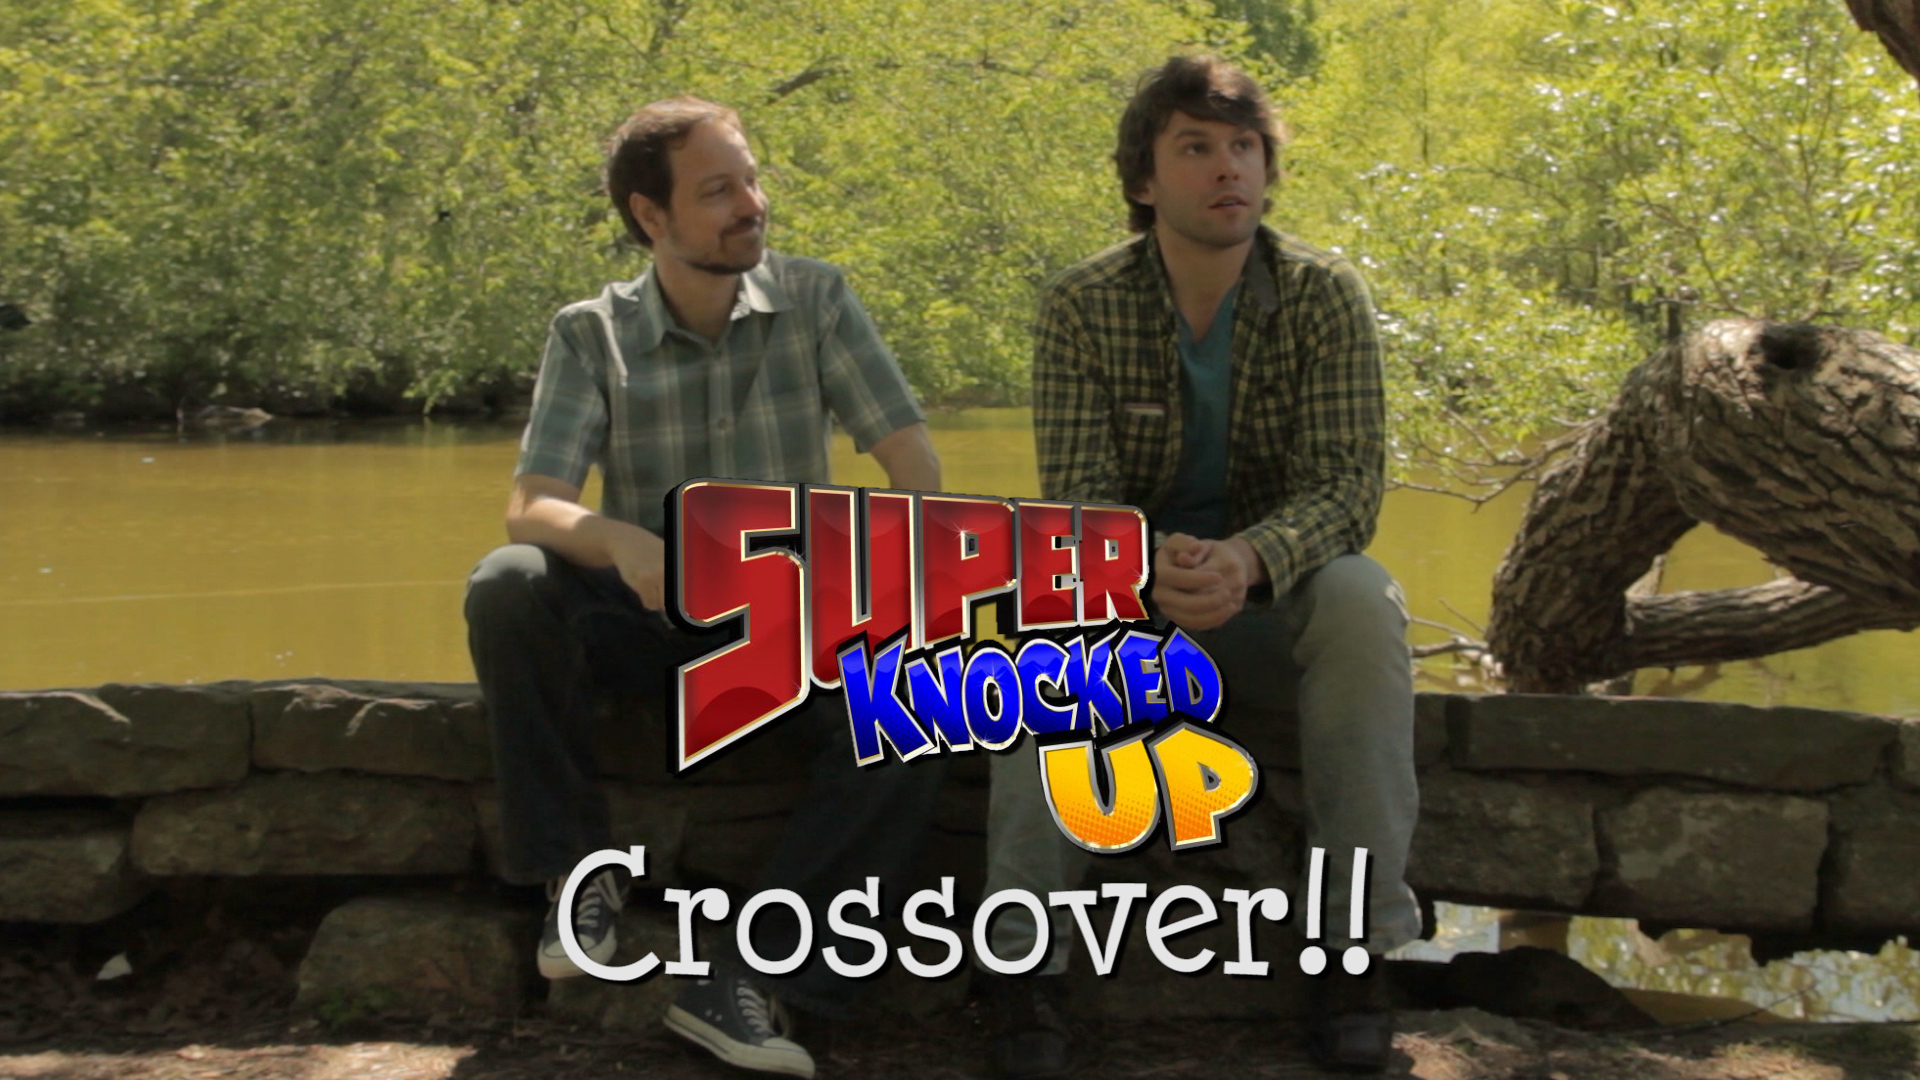 Out with Burnup – a Super Knocked Up Crossover!